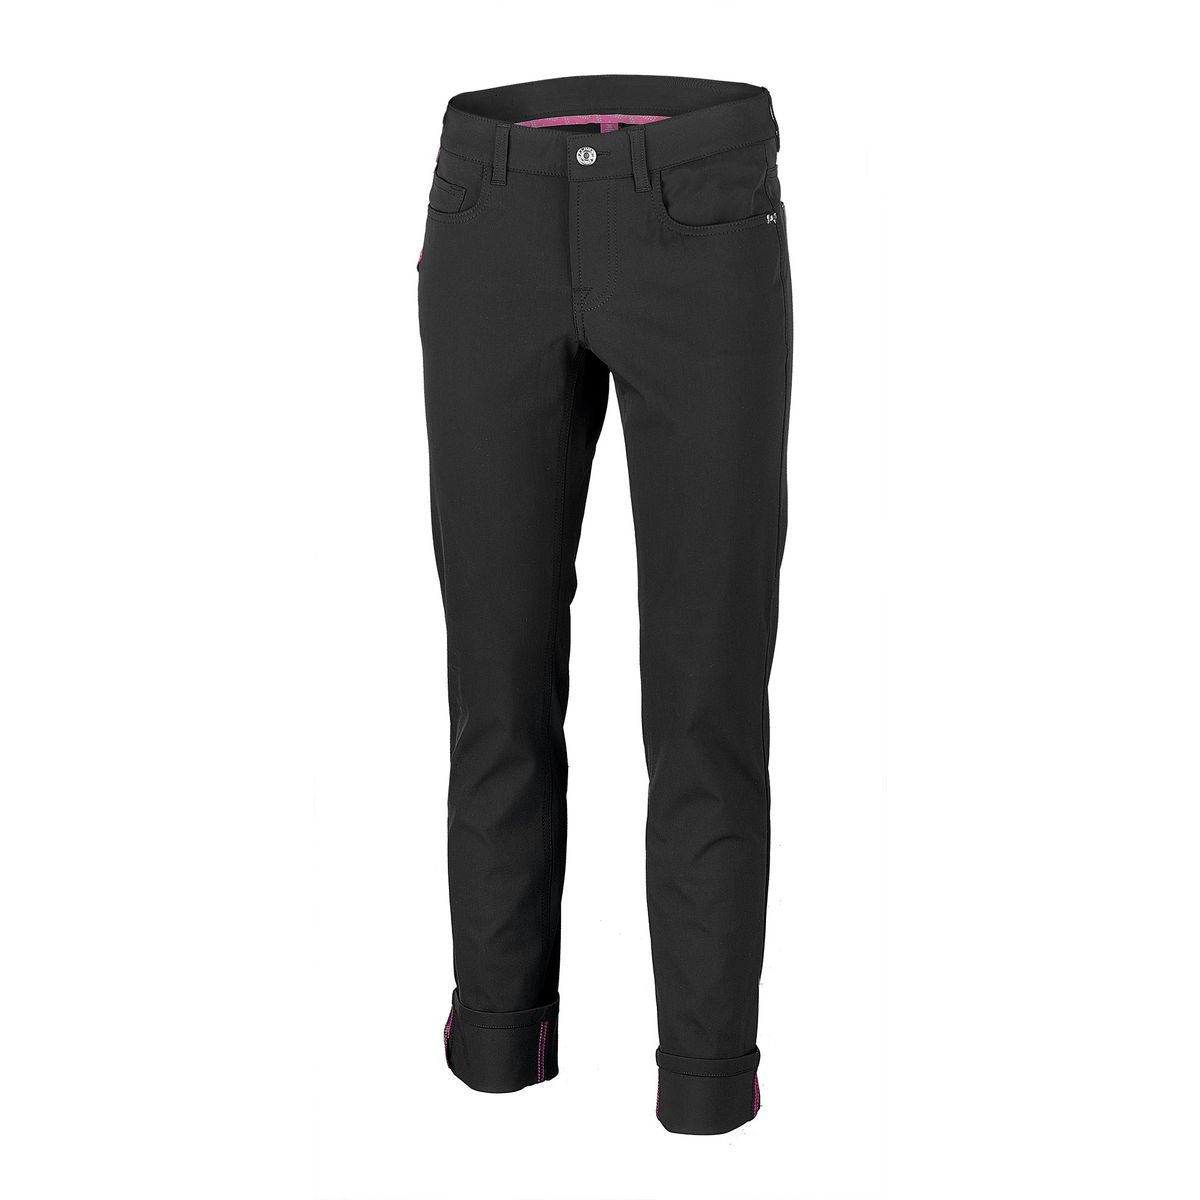 Bicicletta 3xDry Cooler women's jeans